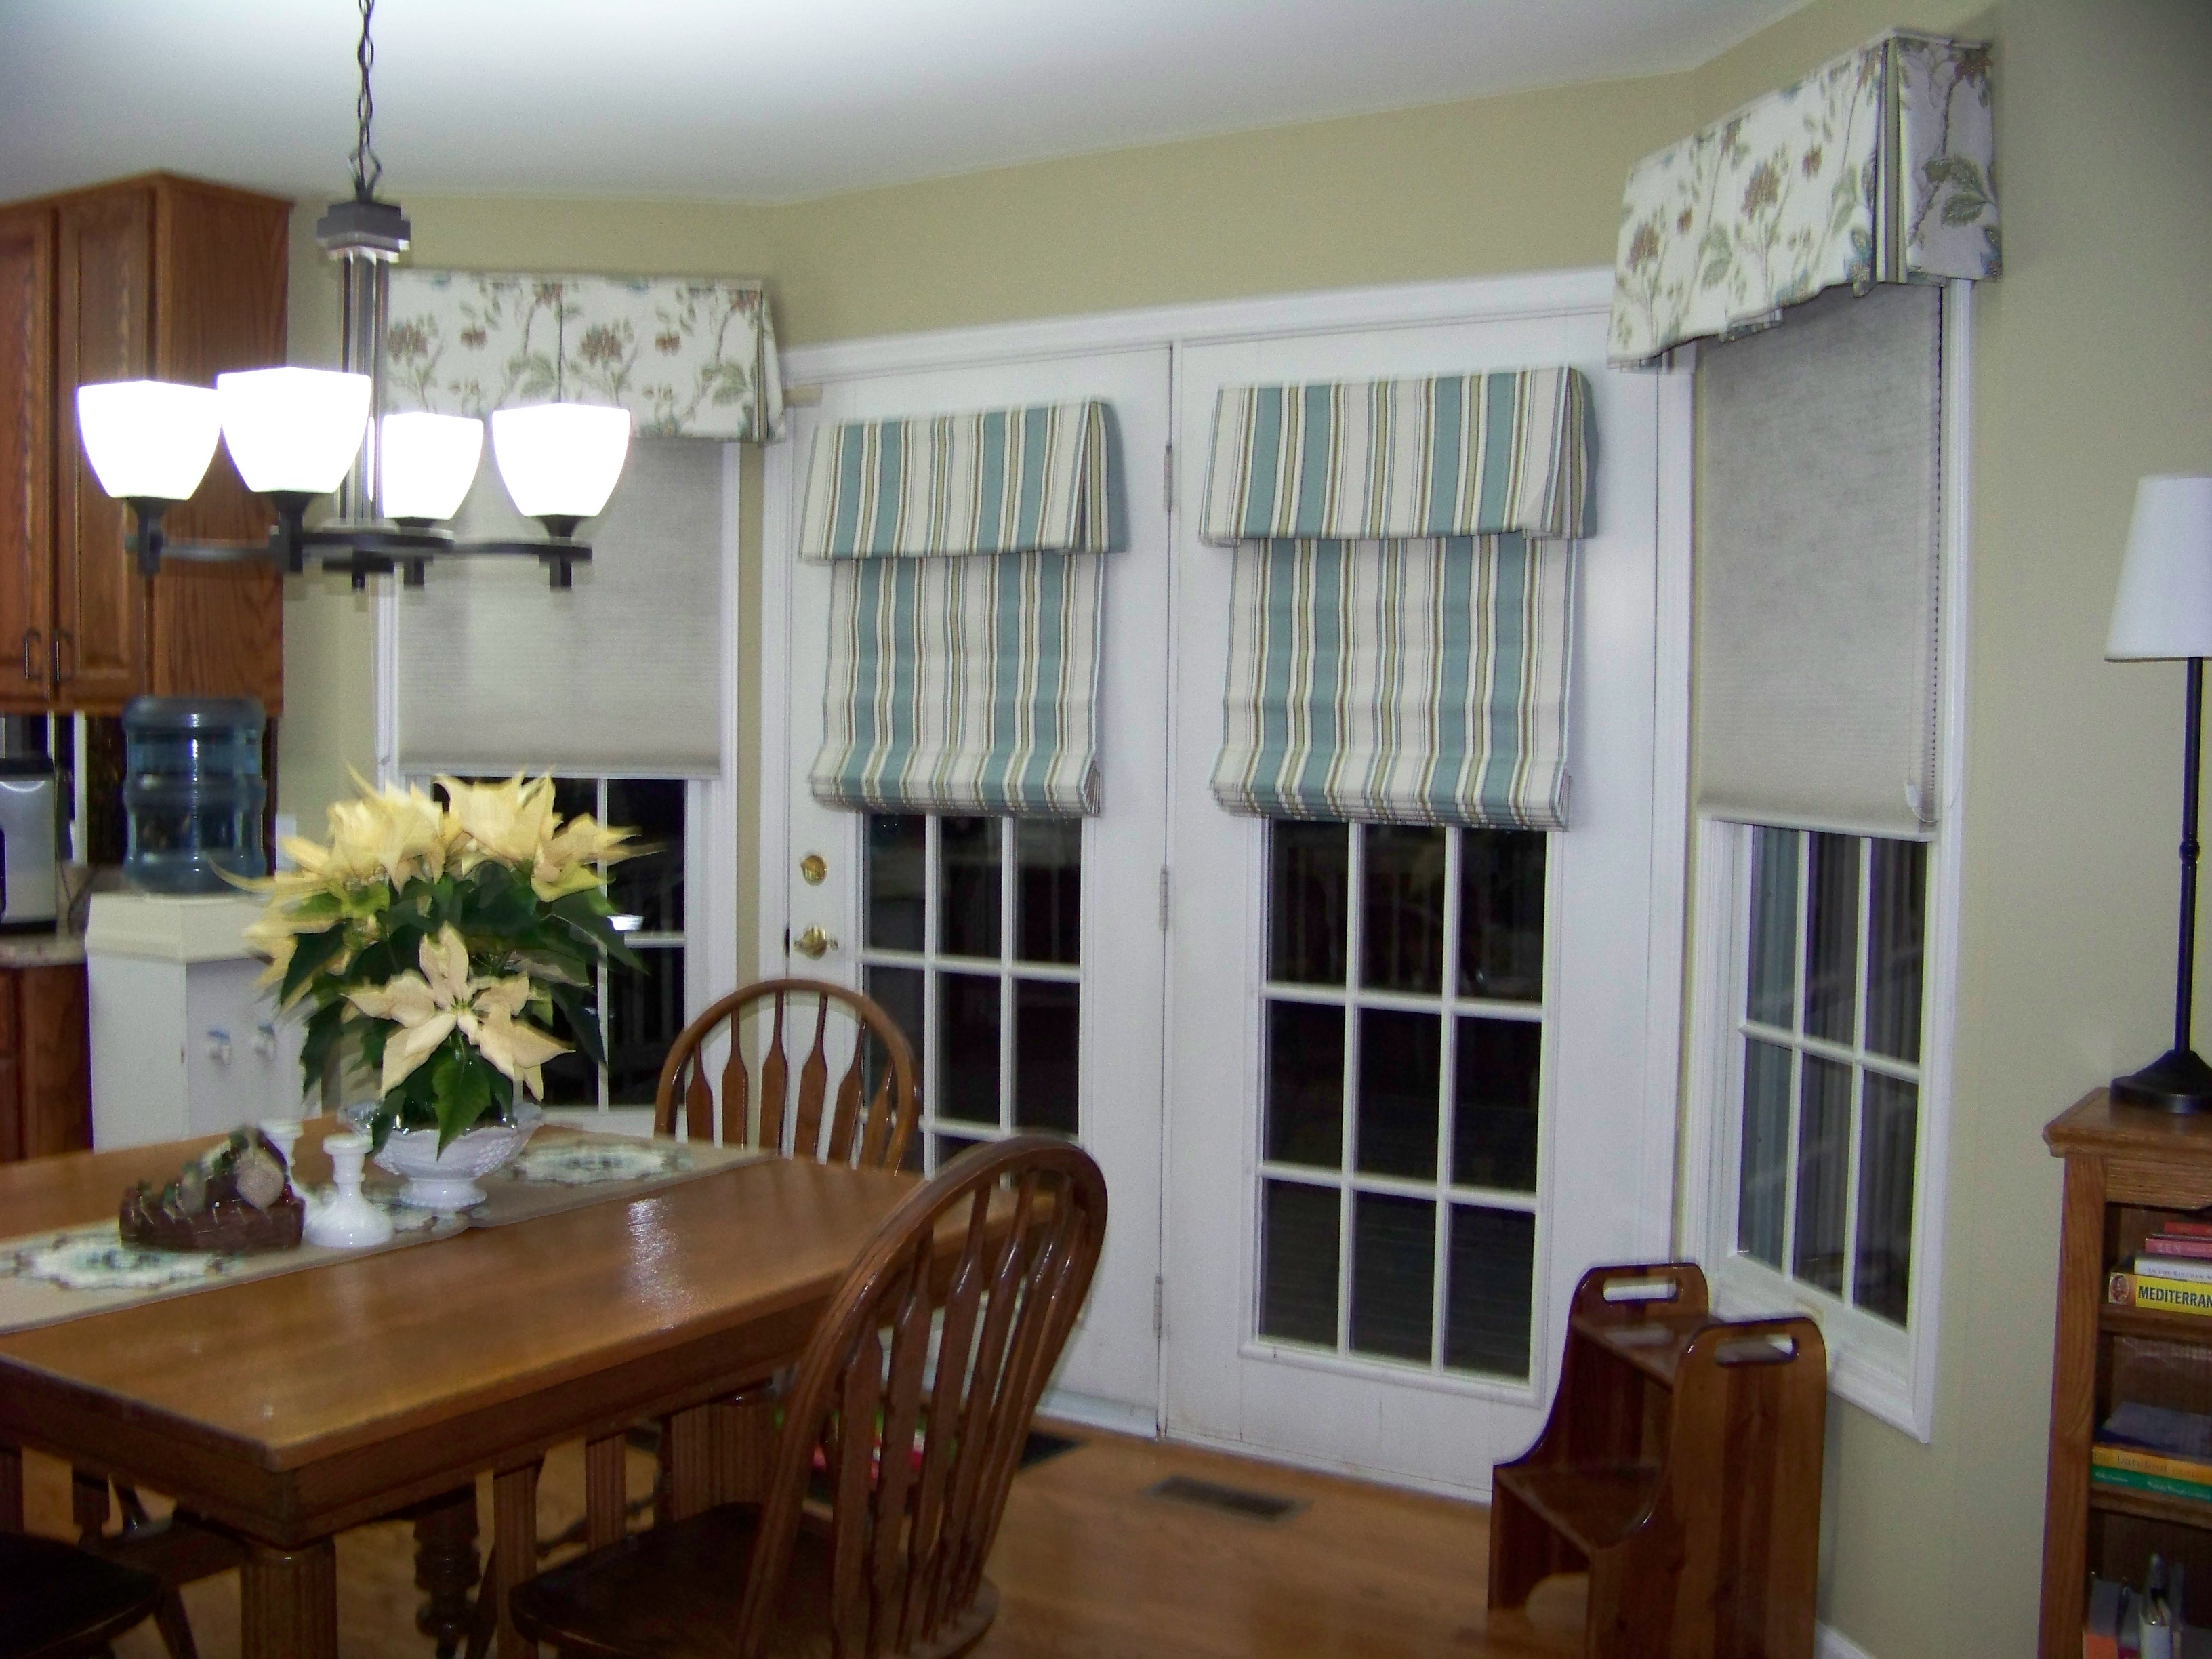 Patio Door Curtain Ideas Homesfeed With Regard To Striped Door Curtain (Image 14 of 15)